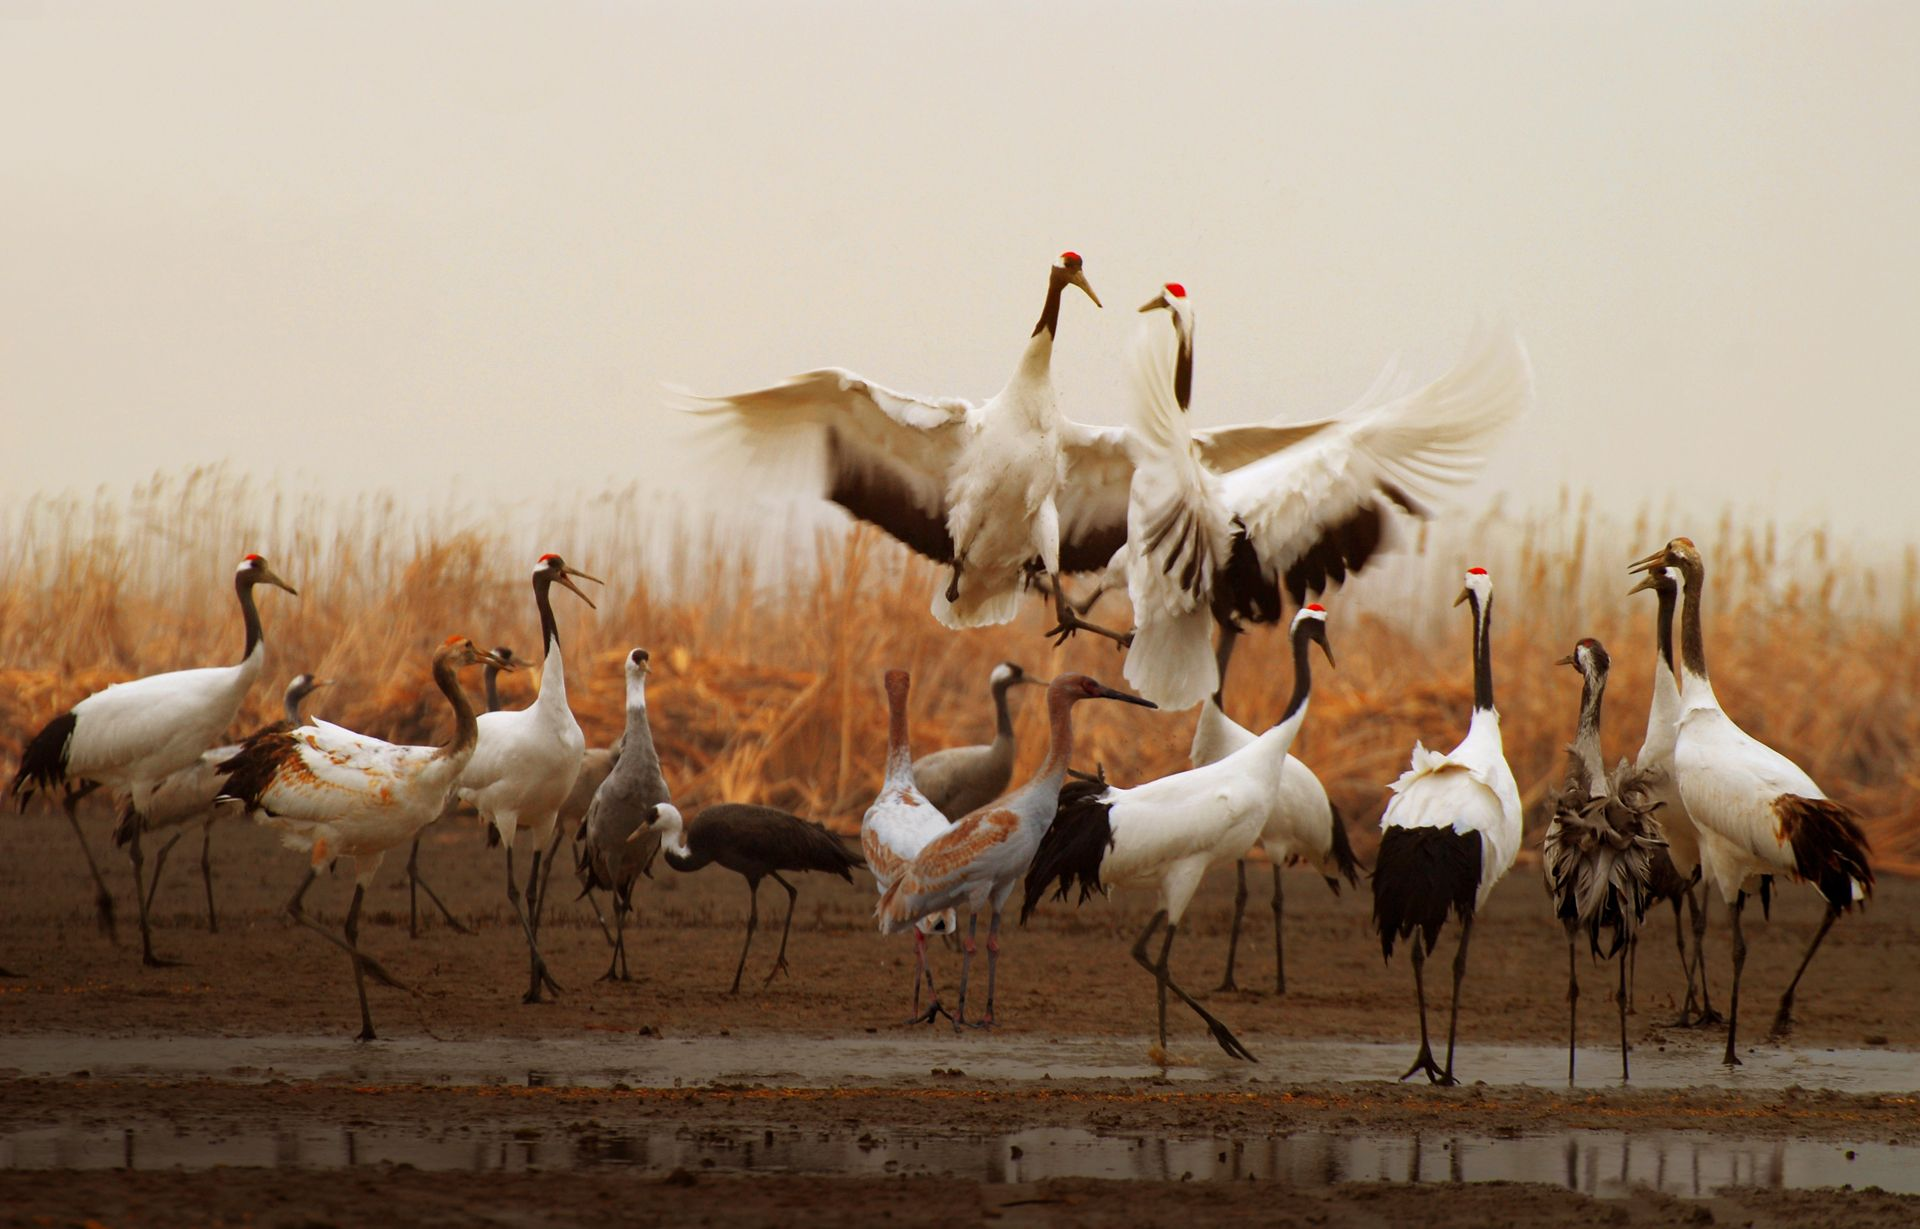 Red-crowned Cranes resting at the Migratory Bird Sanctuaries along the coast of Yellow Sea-Bohai Gulf of China, Phase I | Photo from Yangcheng Broadcasting Television